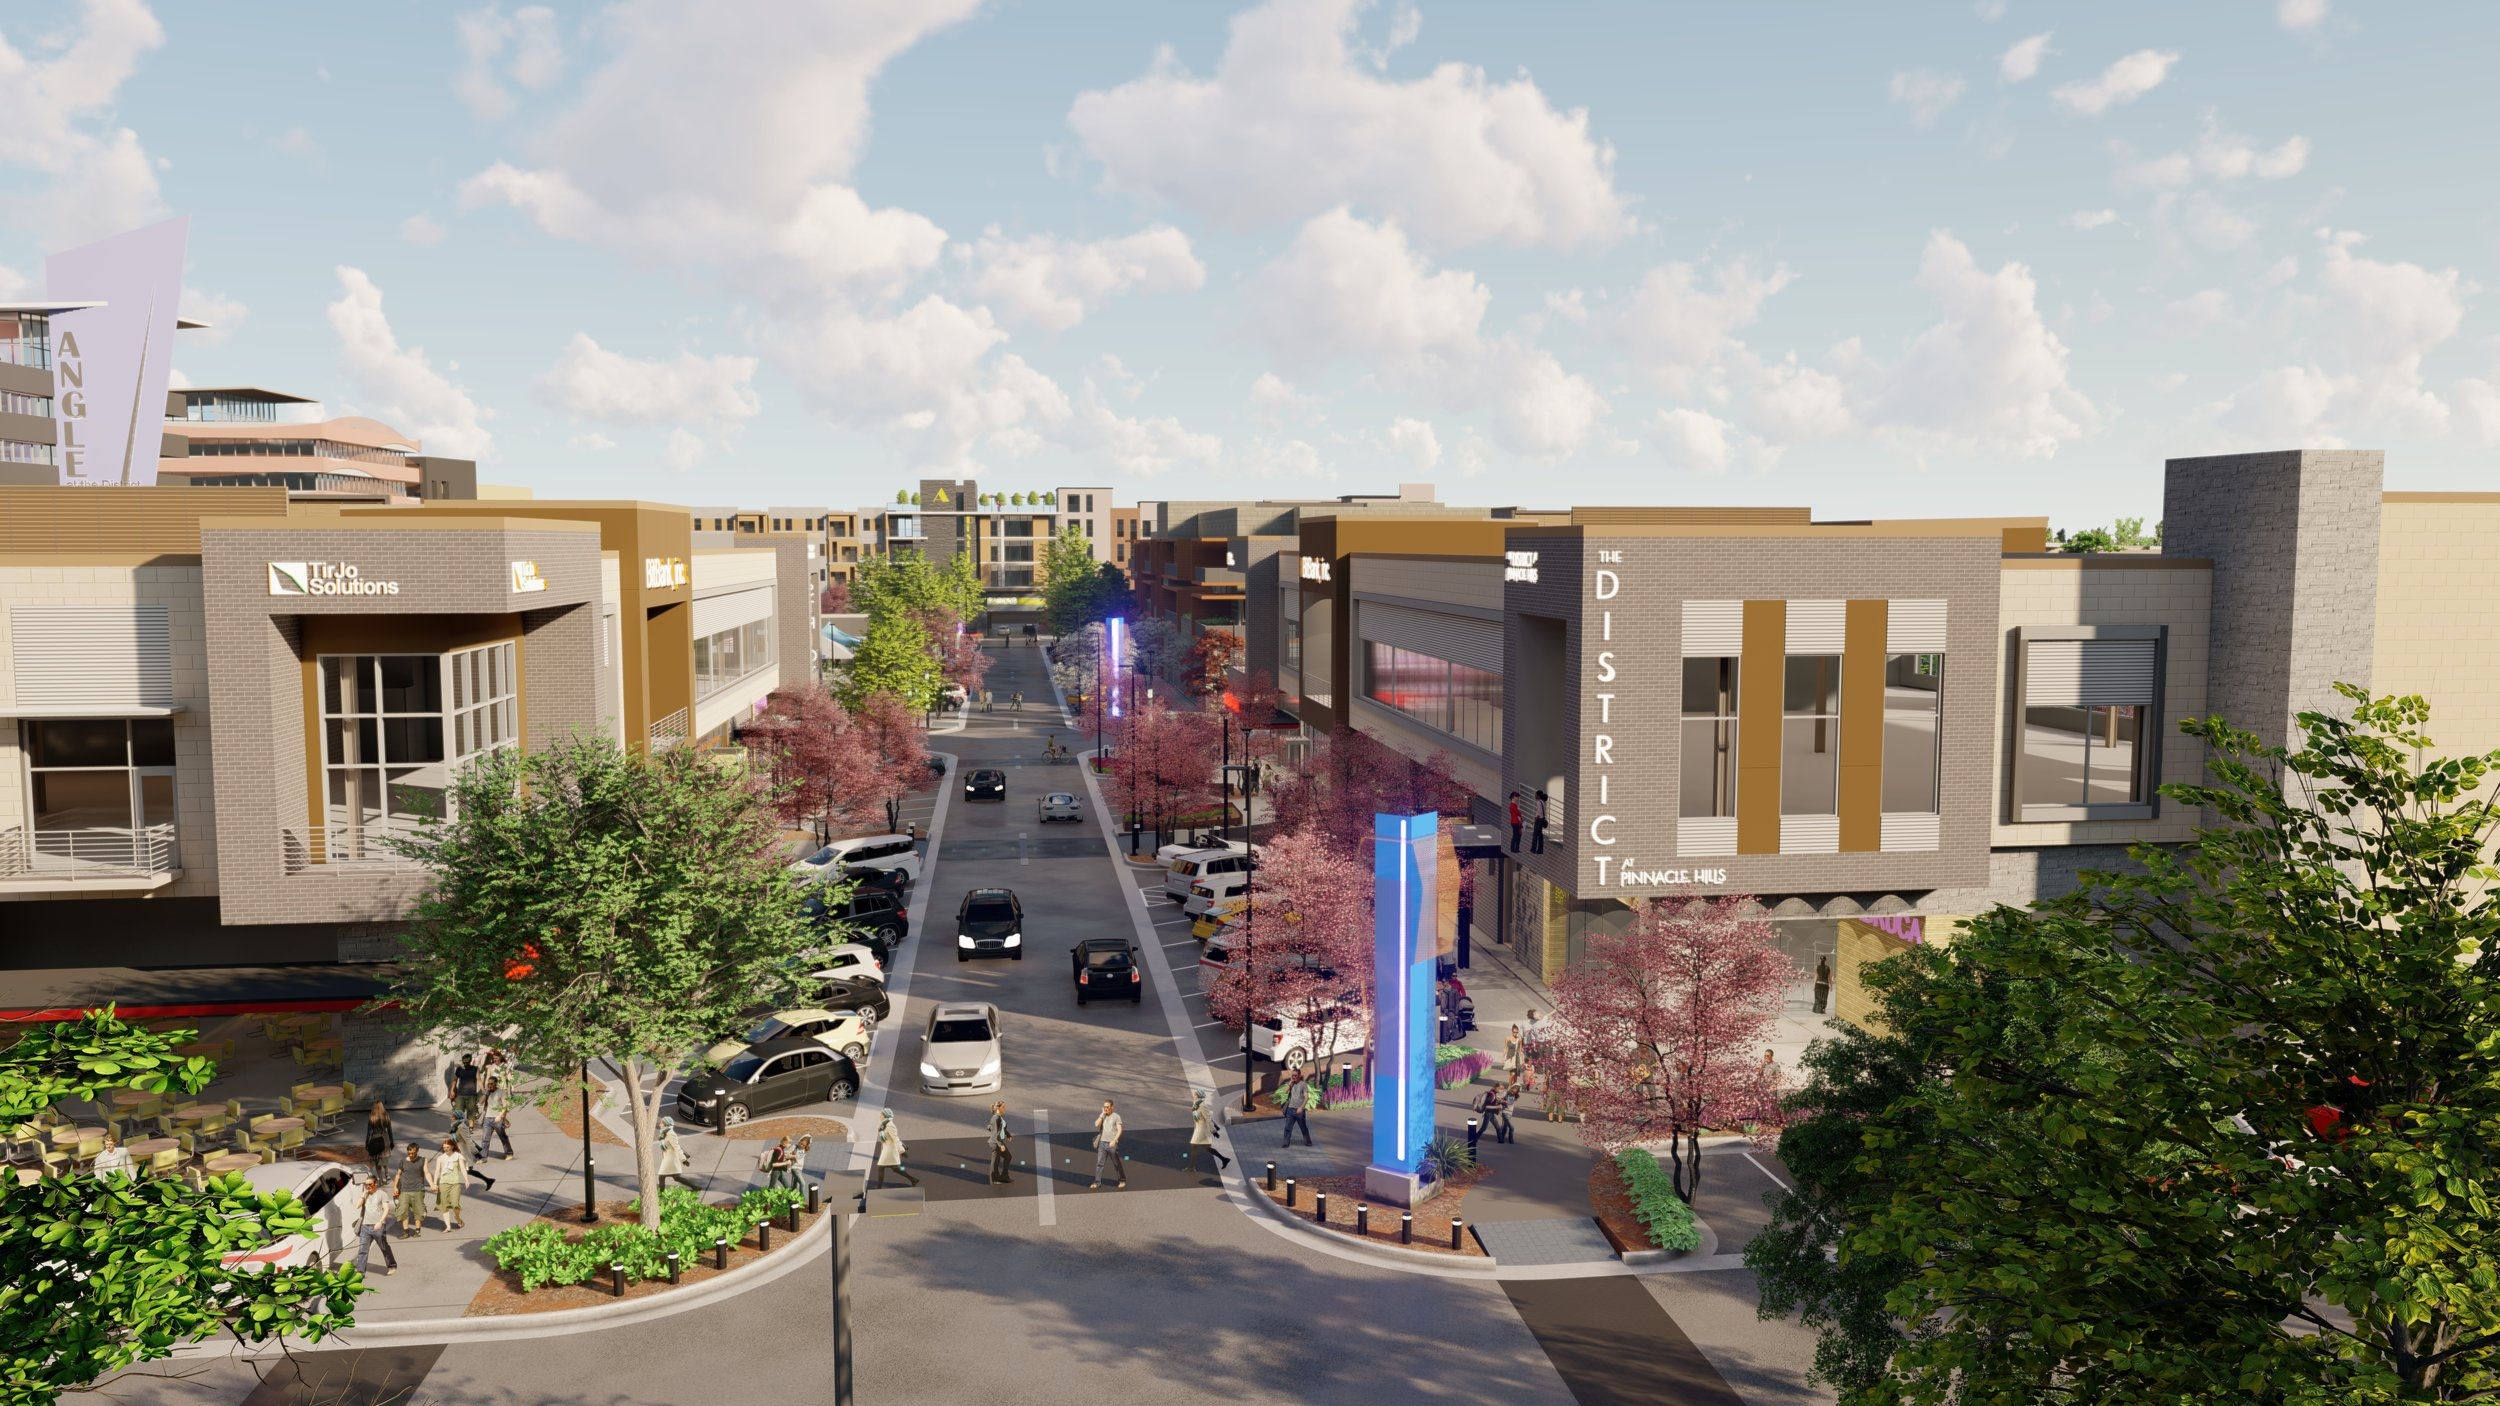 The District seeks to create a true walkable, mixed-use neighborhood in Rogers, conjoining residential, commercial and entertainment amenities with the nearby trails system.